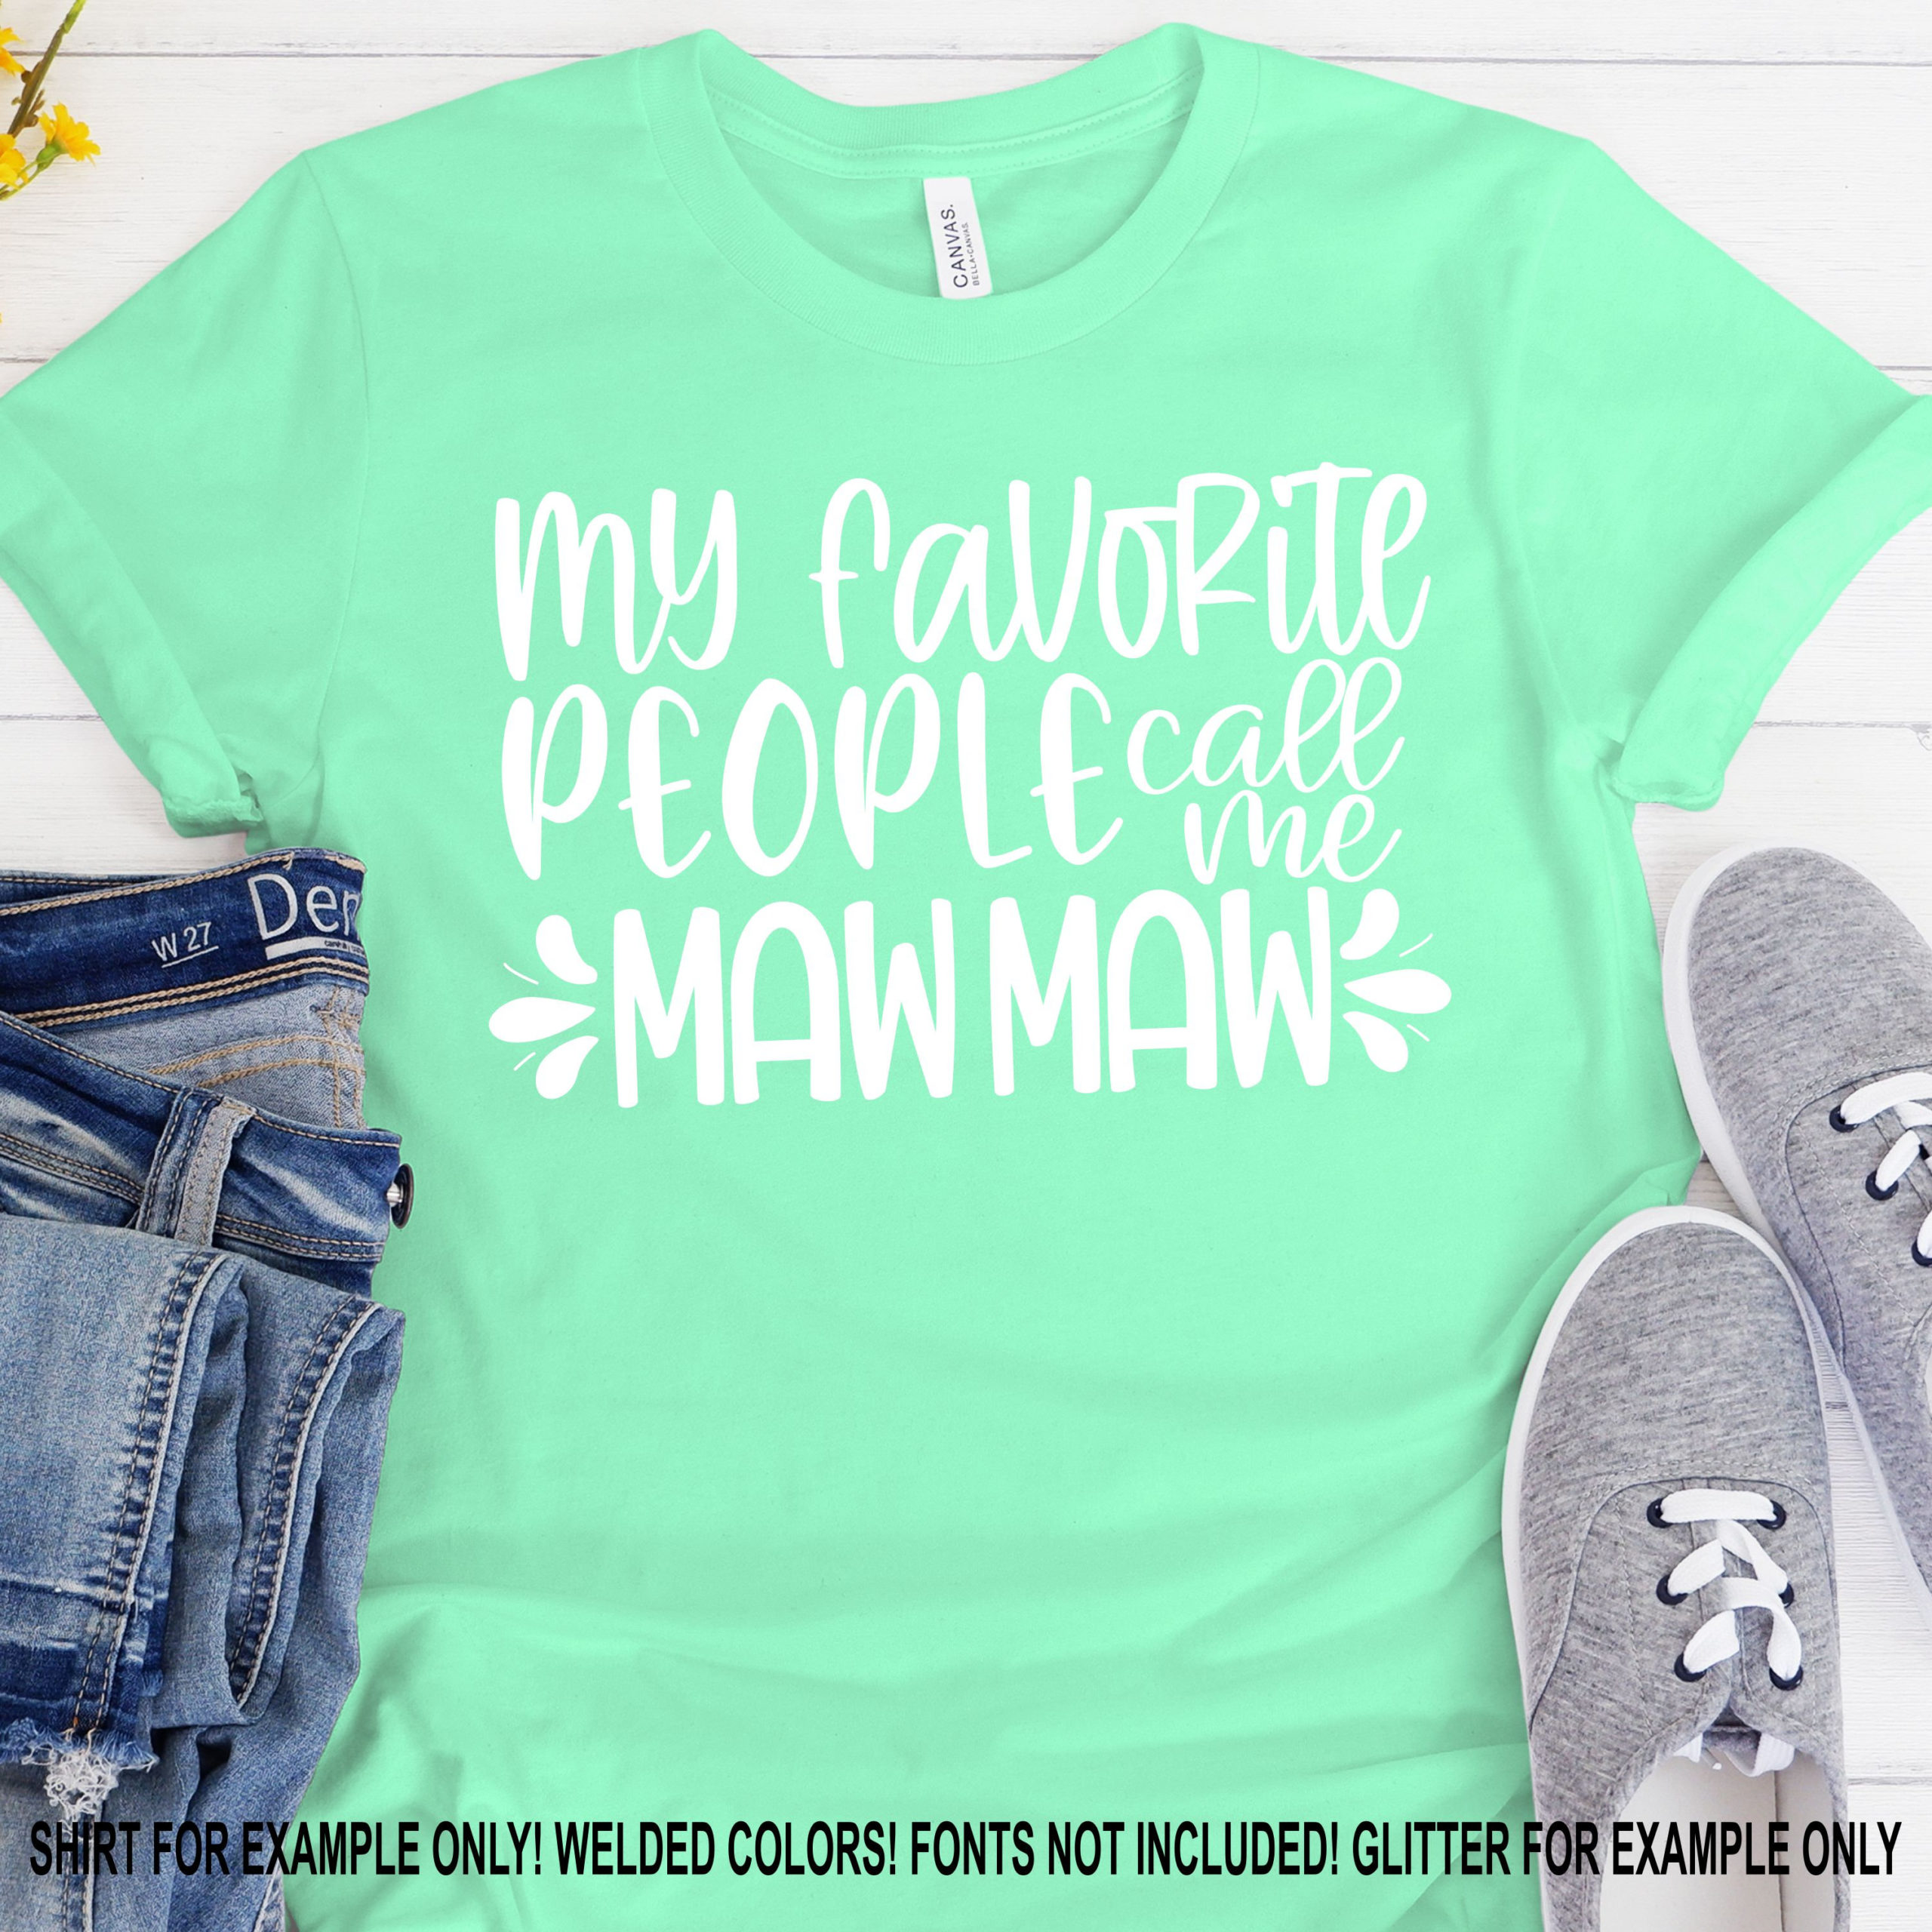 My-favorite-people-call-me-maw-maw-svg-mothers-day-svg-happy-mothers-day-grandma-svg-cuttable-svg-designs-cuttable-cut-file-cricut-svg-2-60512d6b